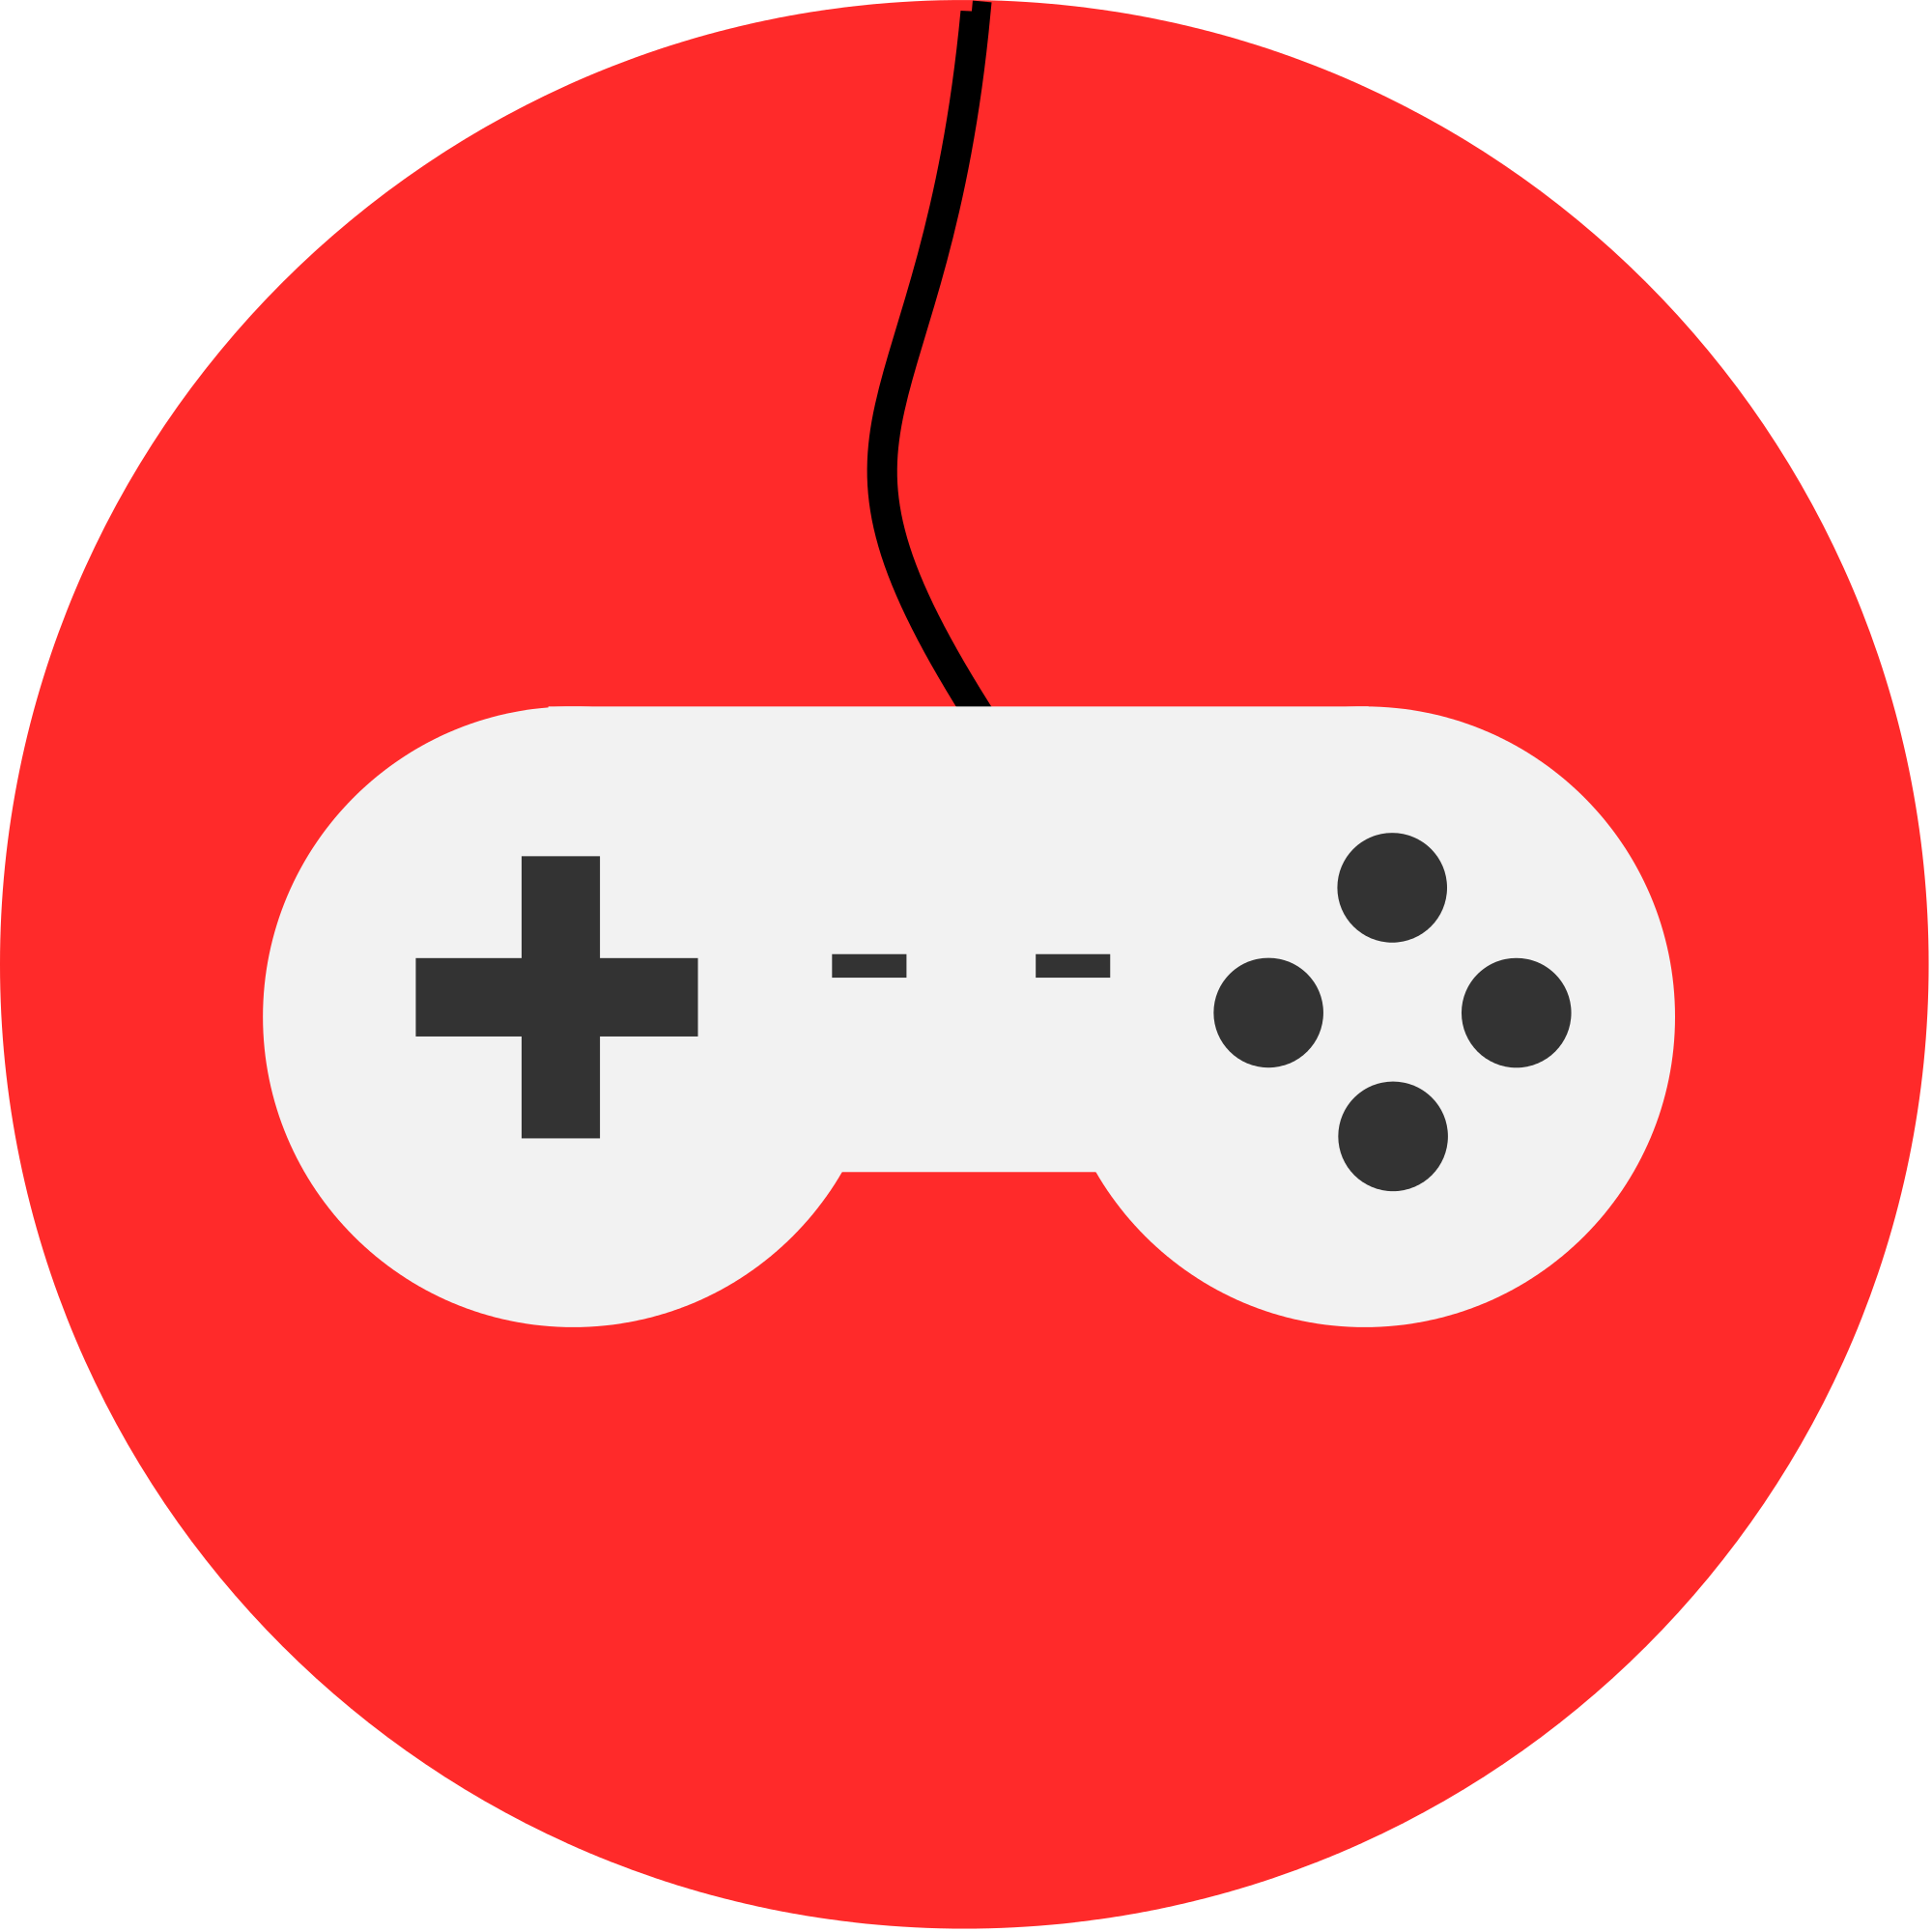 free A wired family update. Gaming clipart practice time